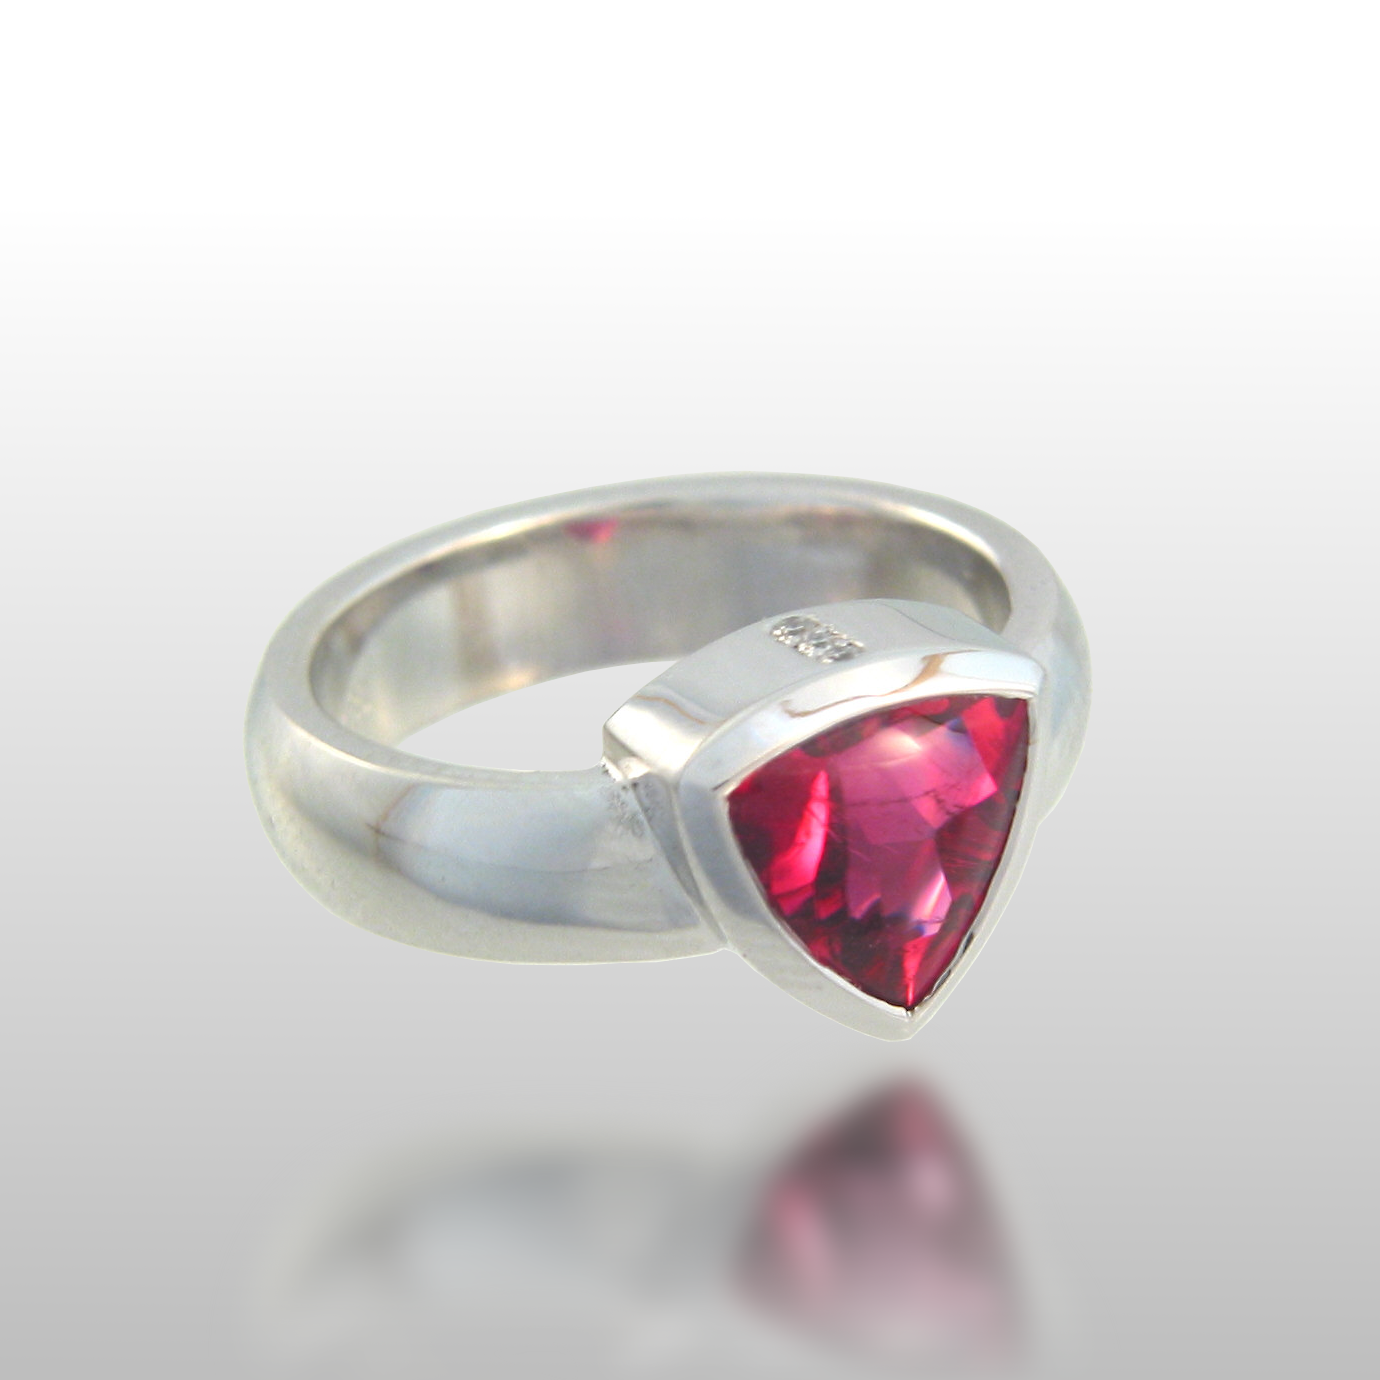 Contemporary Rubellite Ring in 18k White Gold with Diamonds from the 'Spectrum' Collection by Pratima Design Fine Art Jewelry